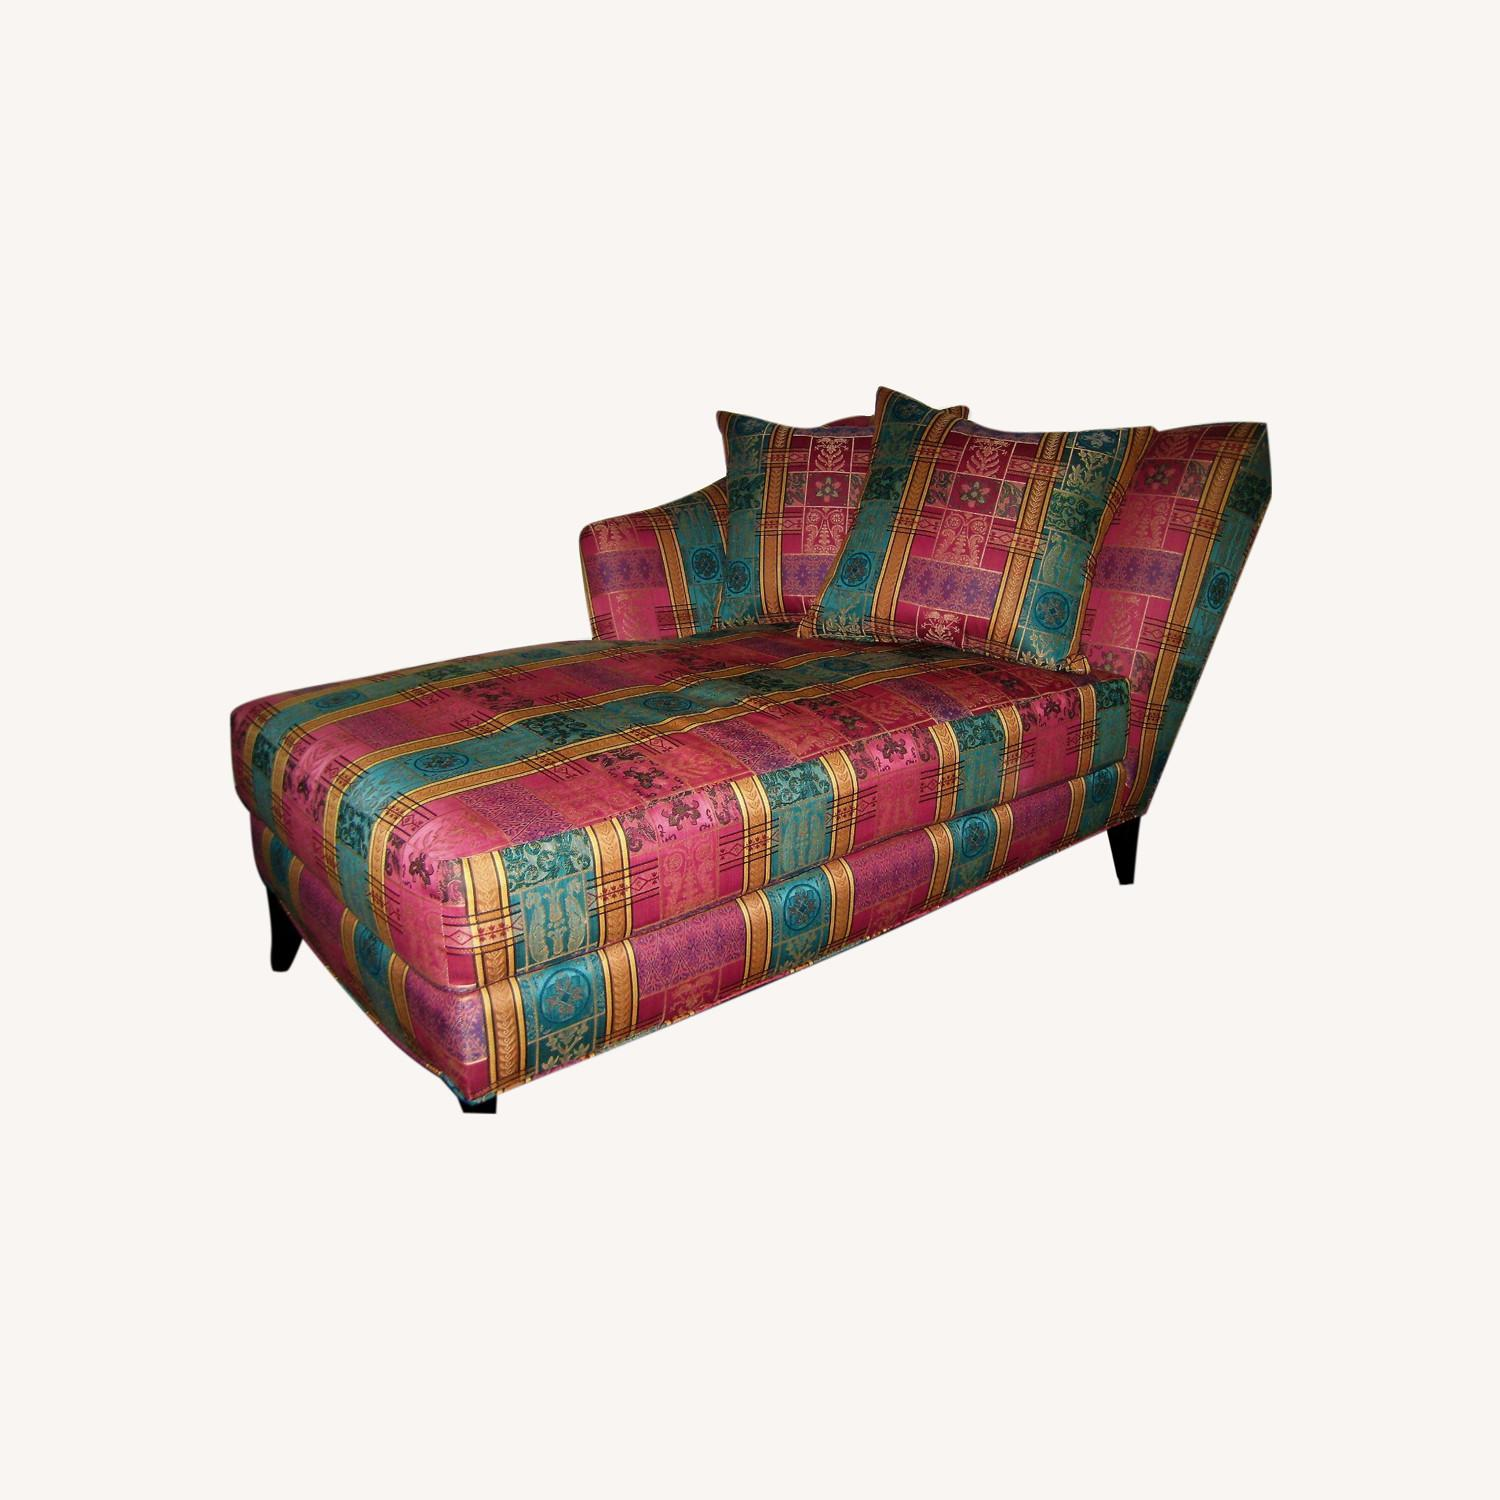 Chaise Lounge Fill with Feather - image-0